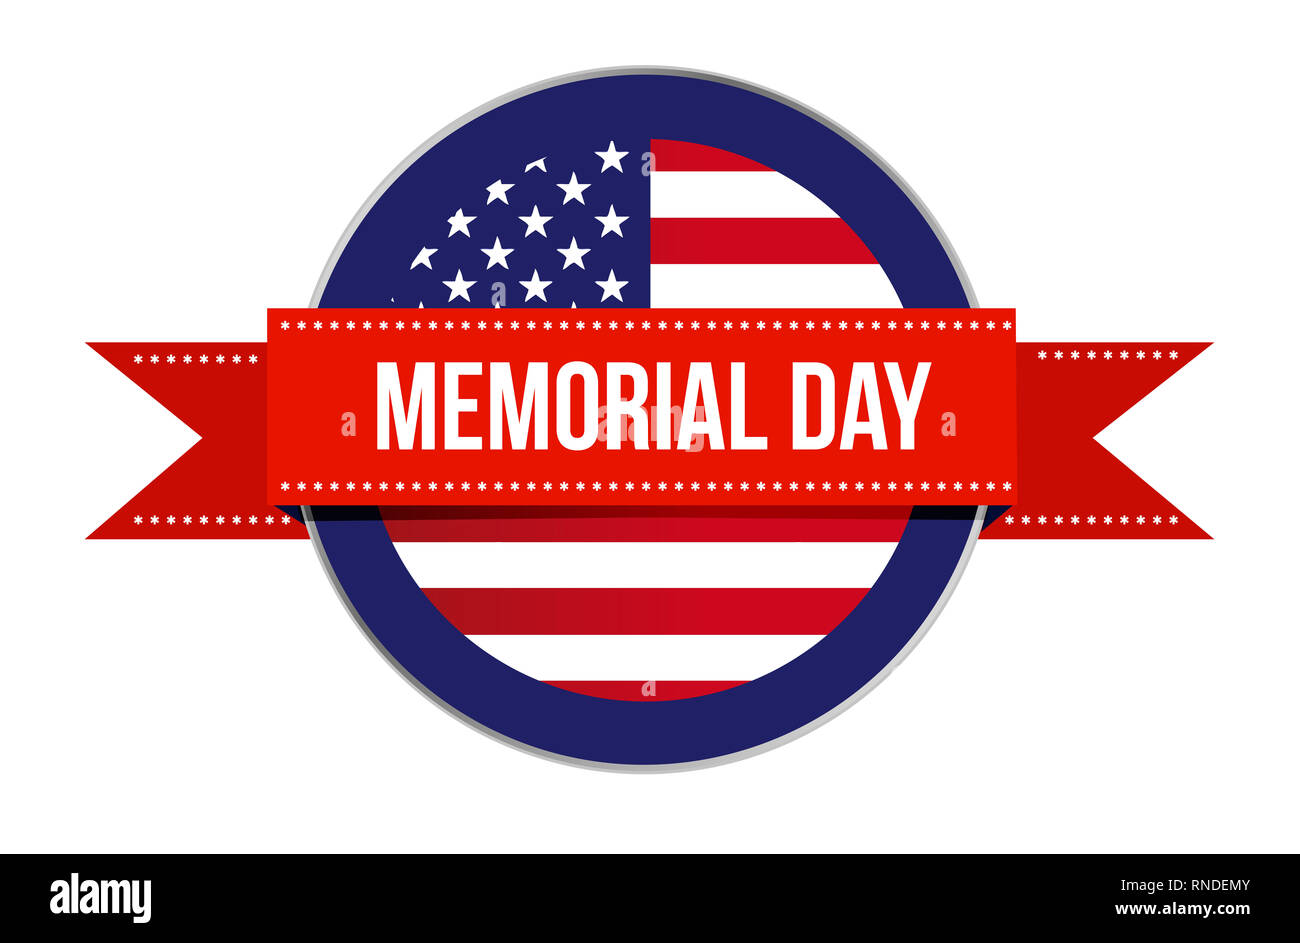 Memorial day sign seal icon illustration isolated over a white background Stock Photo